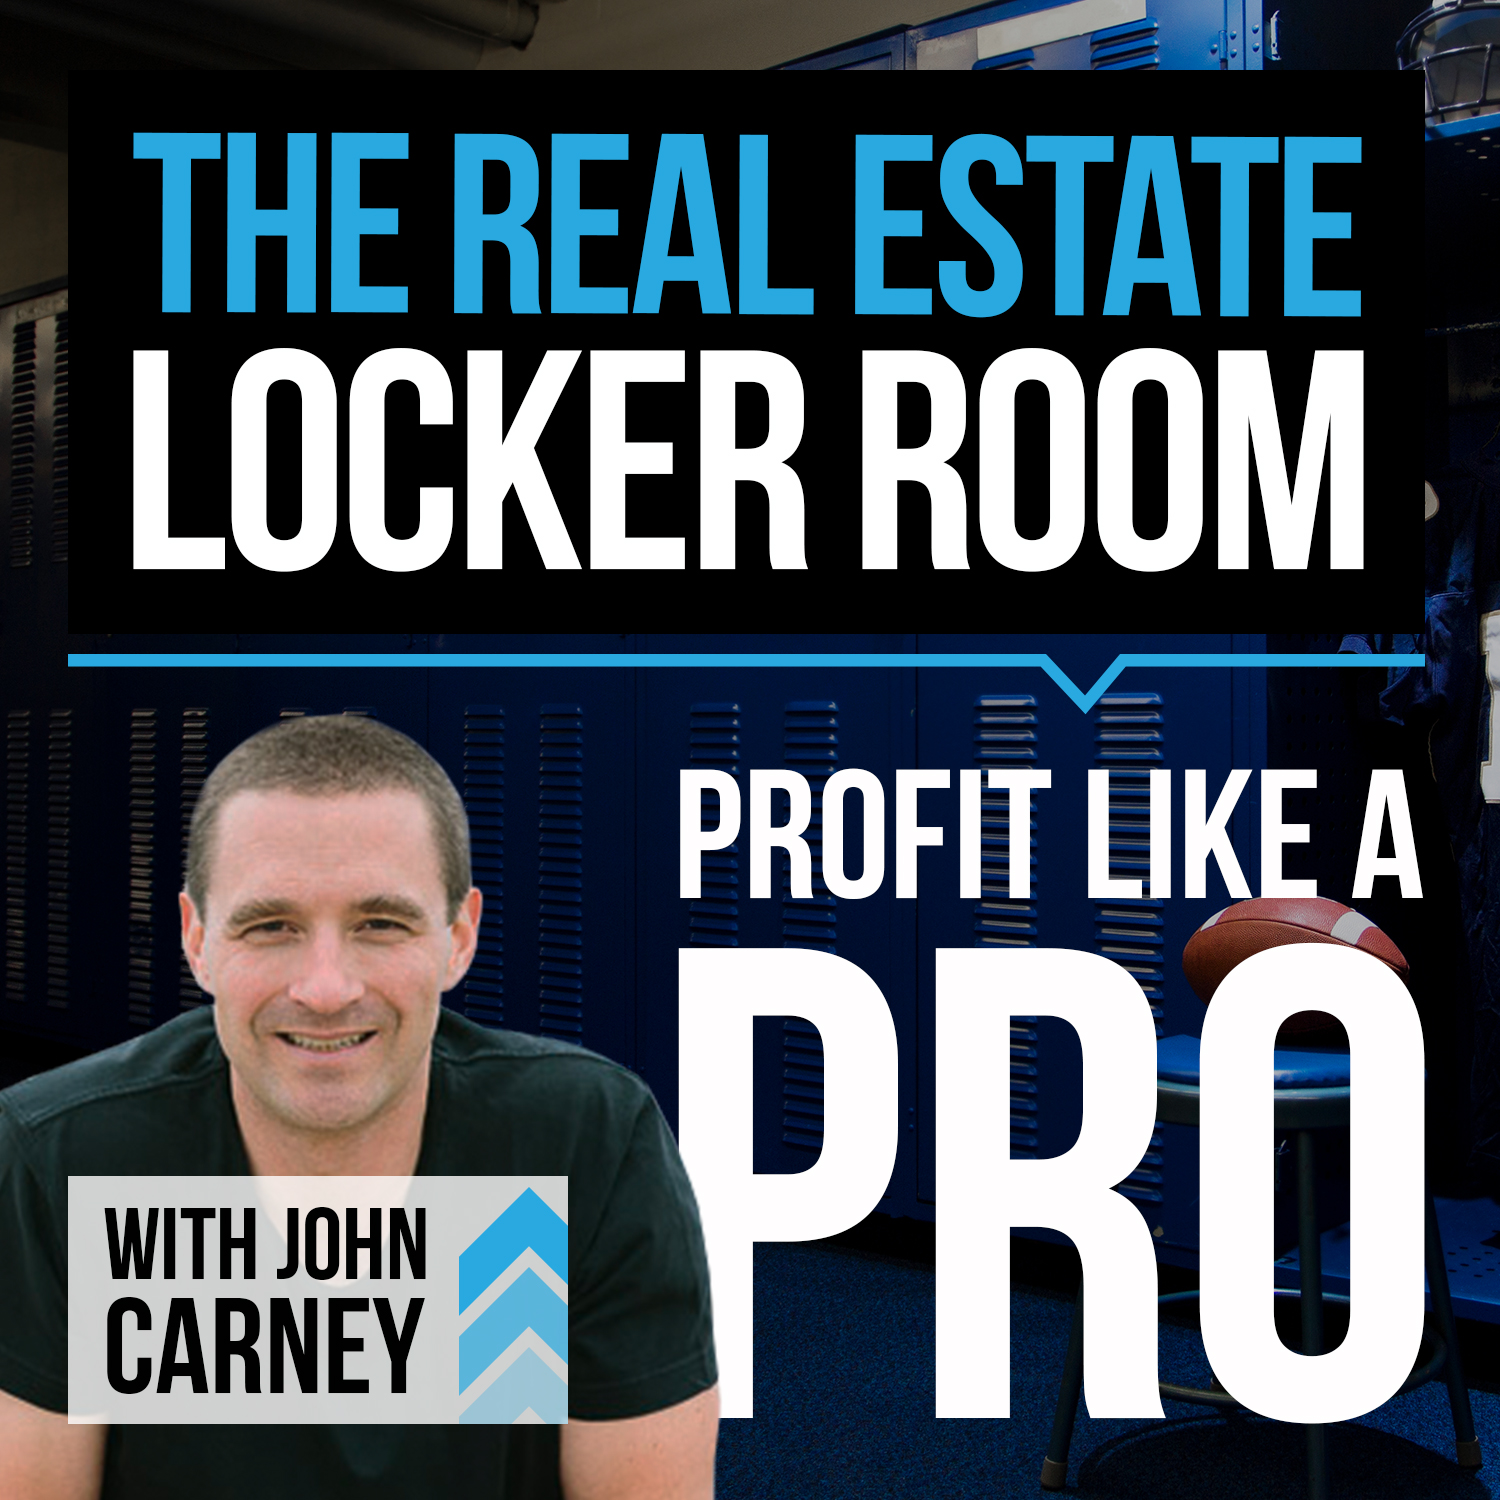 The Real Estate Locker Room Show with John Carney